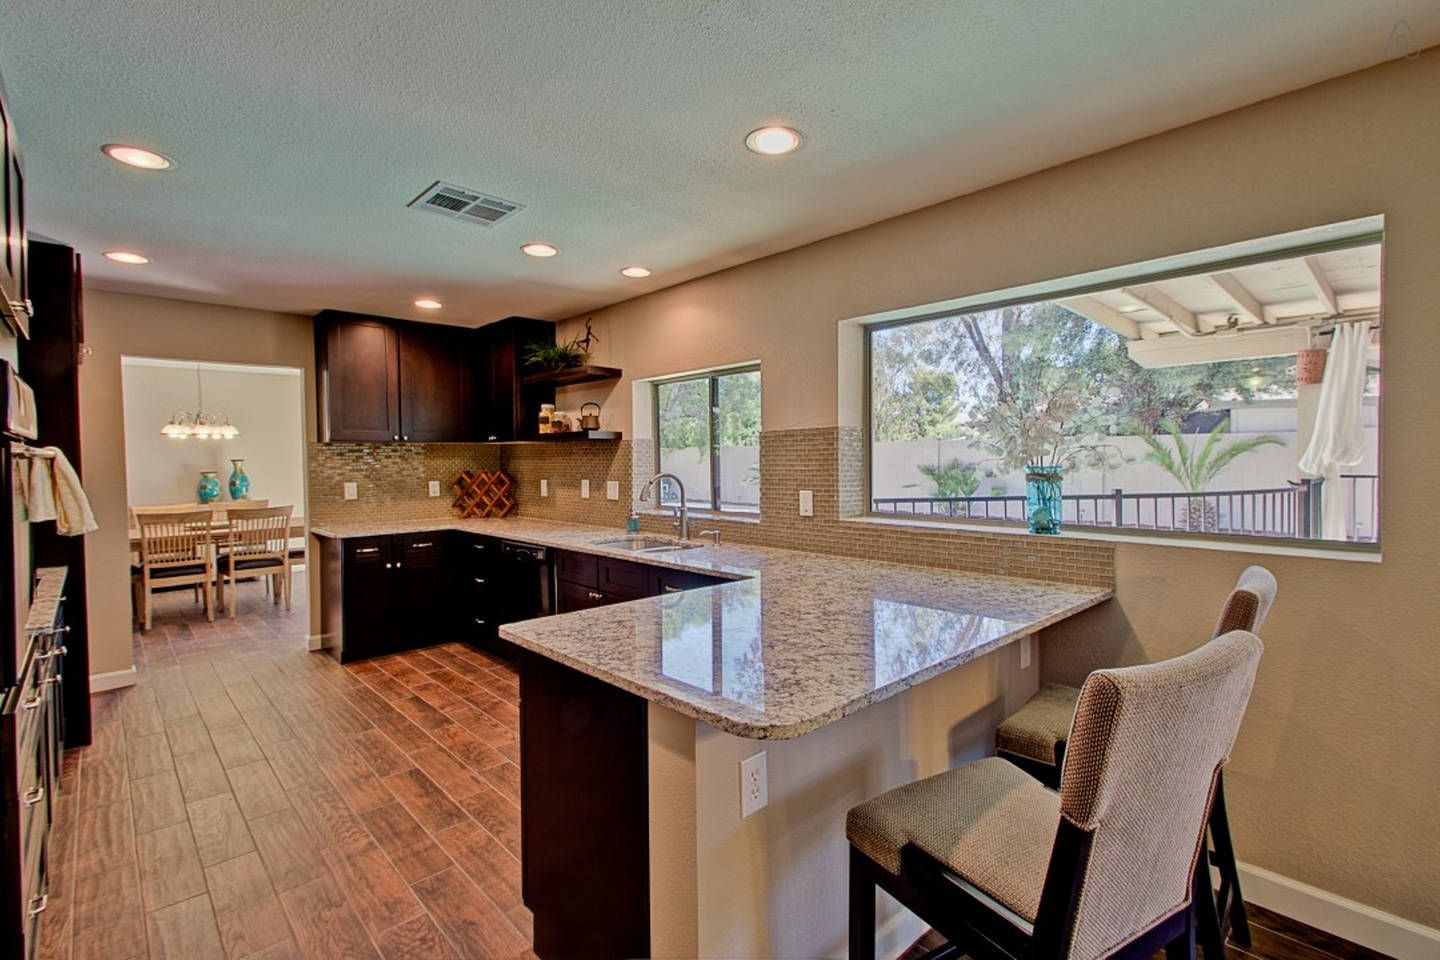 Your Home Away From Home Vacation Rental In Scottsdale Arizona View More Scottsdalearizonavacationrentals Home Vacation Home Condo Rental